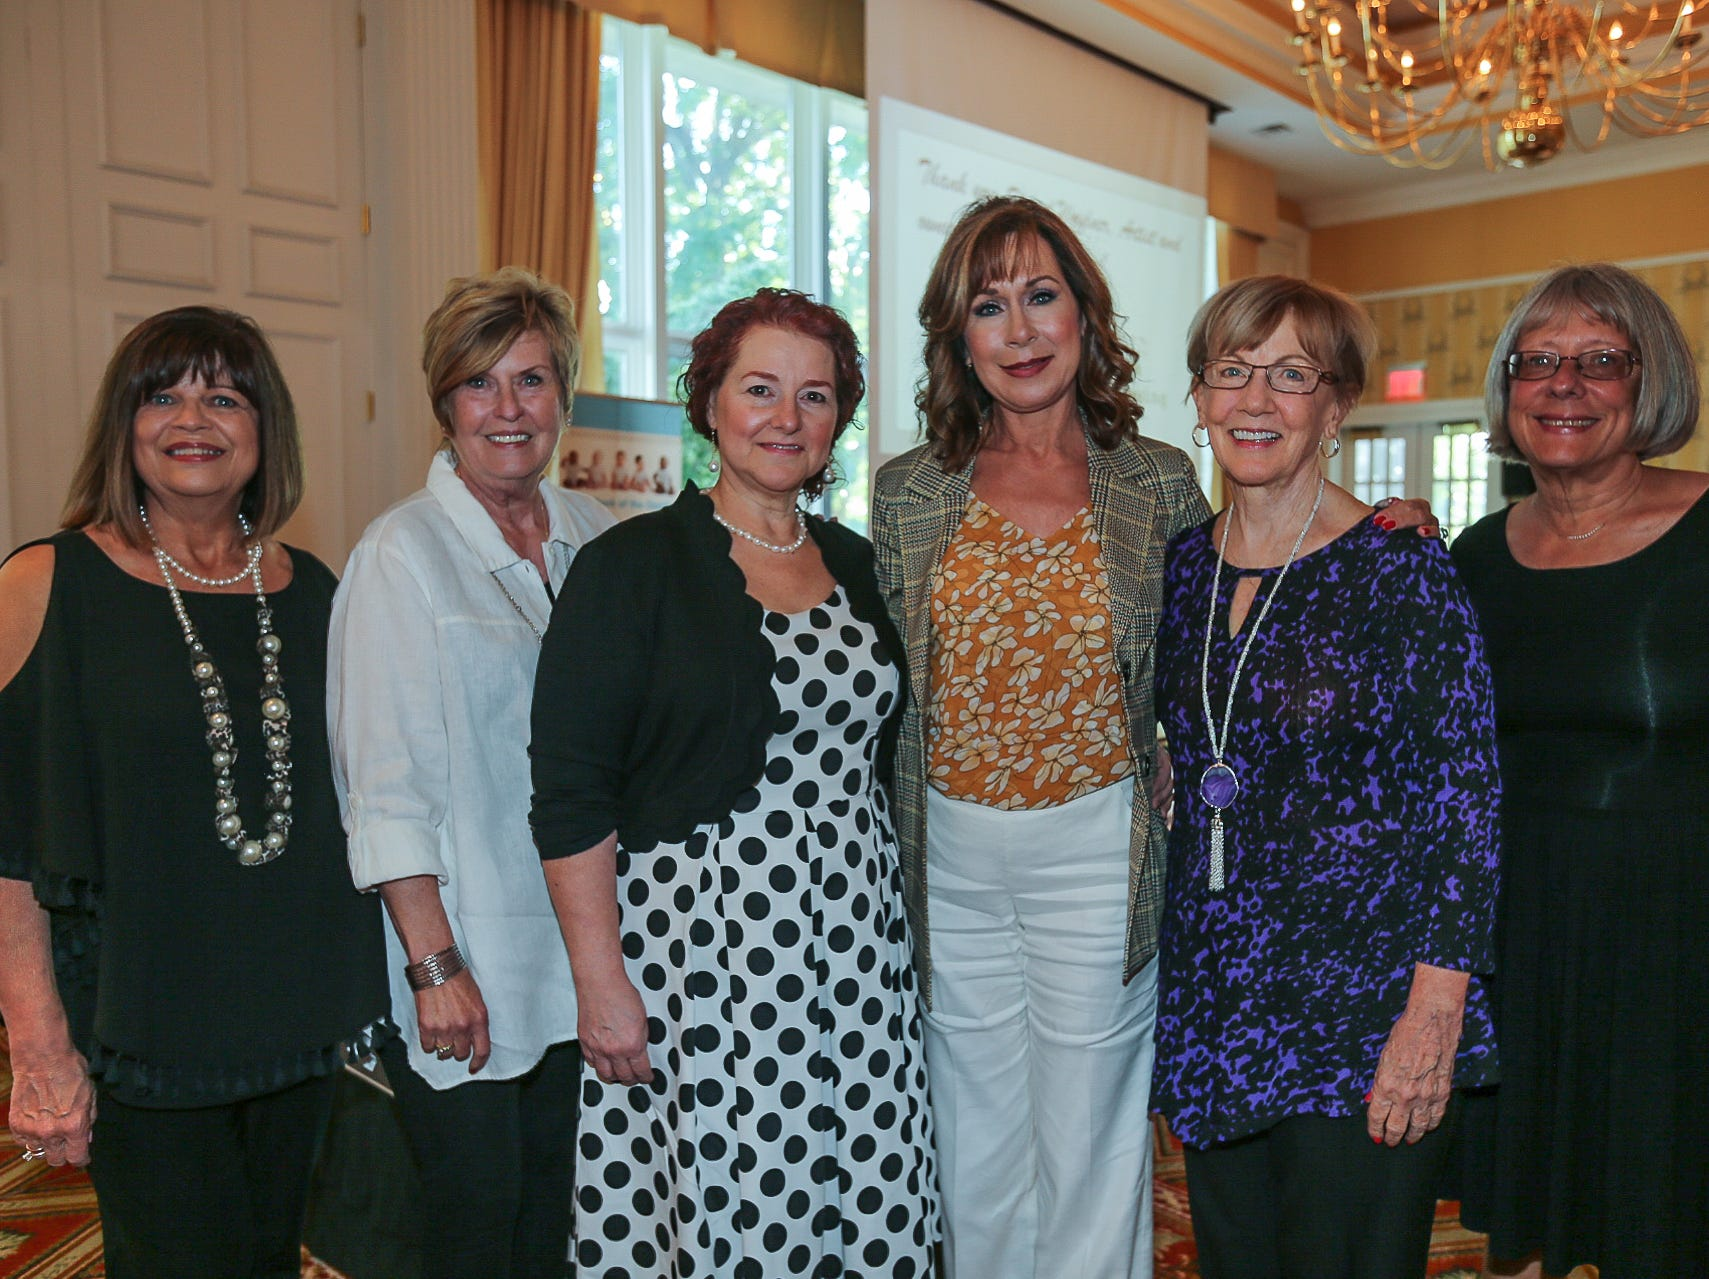 Donna Kinney, Kathy Luna, Michelle Matula, Sonya Wise, Jan Derington, and Sue VanAntwerp